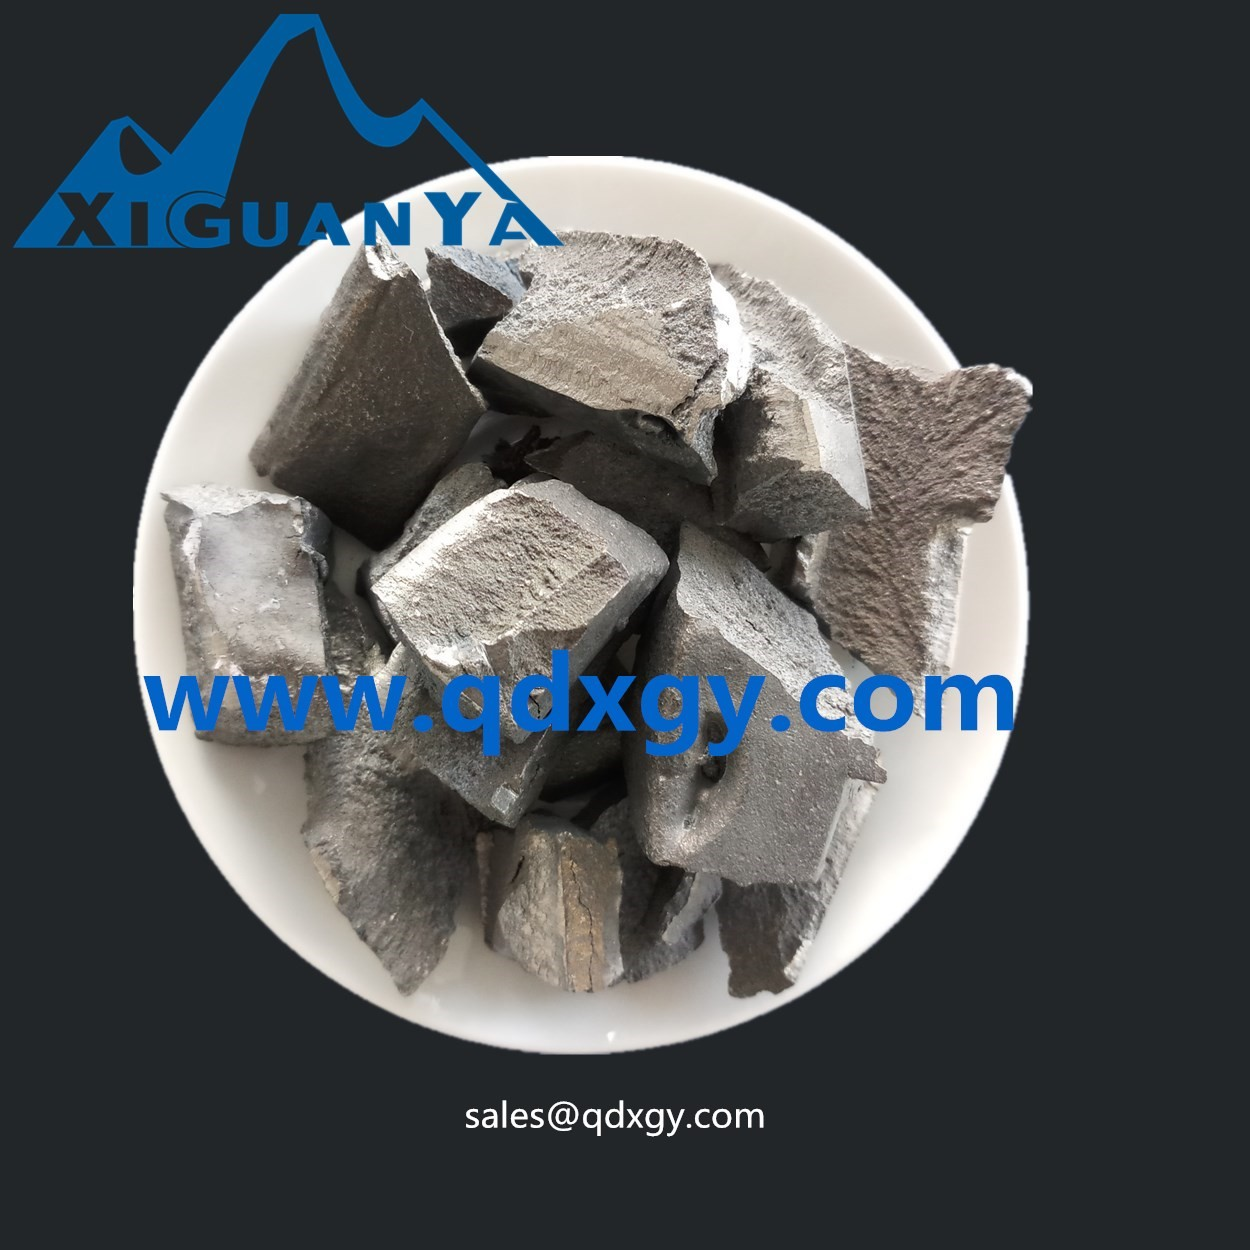 Qingdao Xiguanya Mining Industry Co.,Ltd